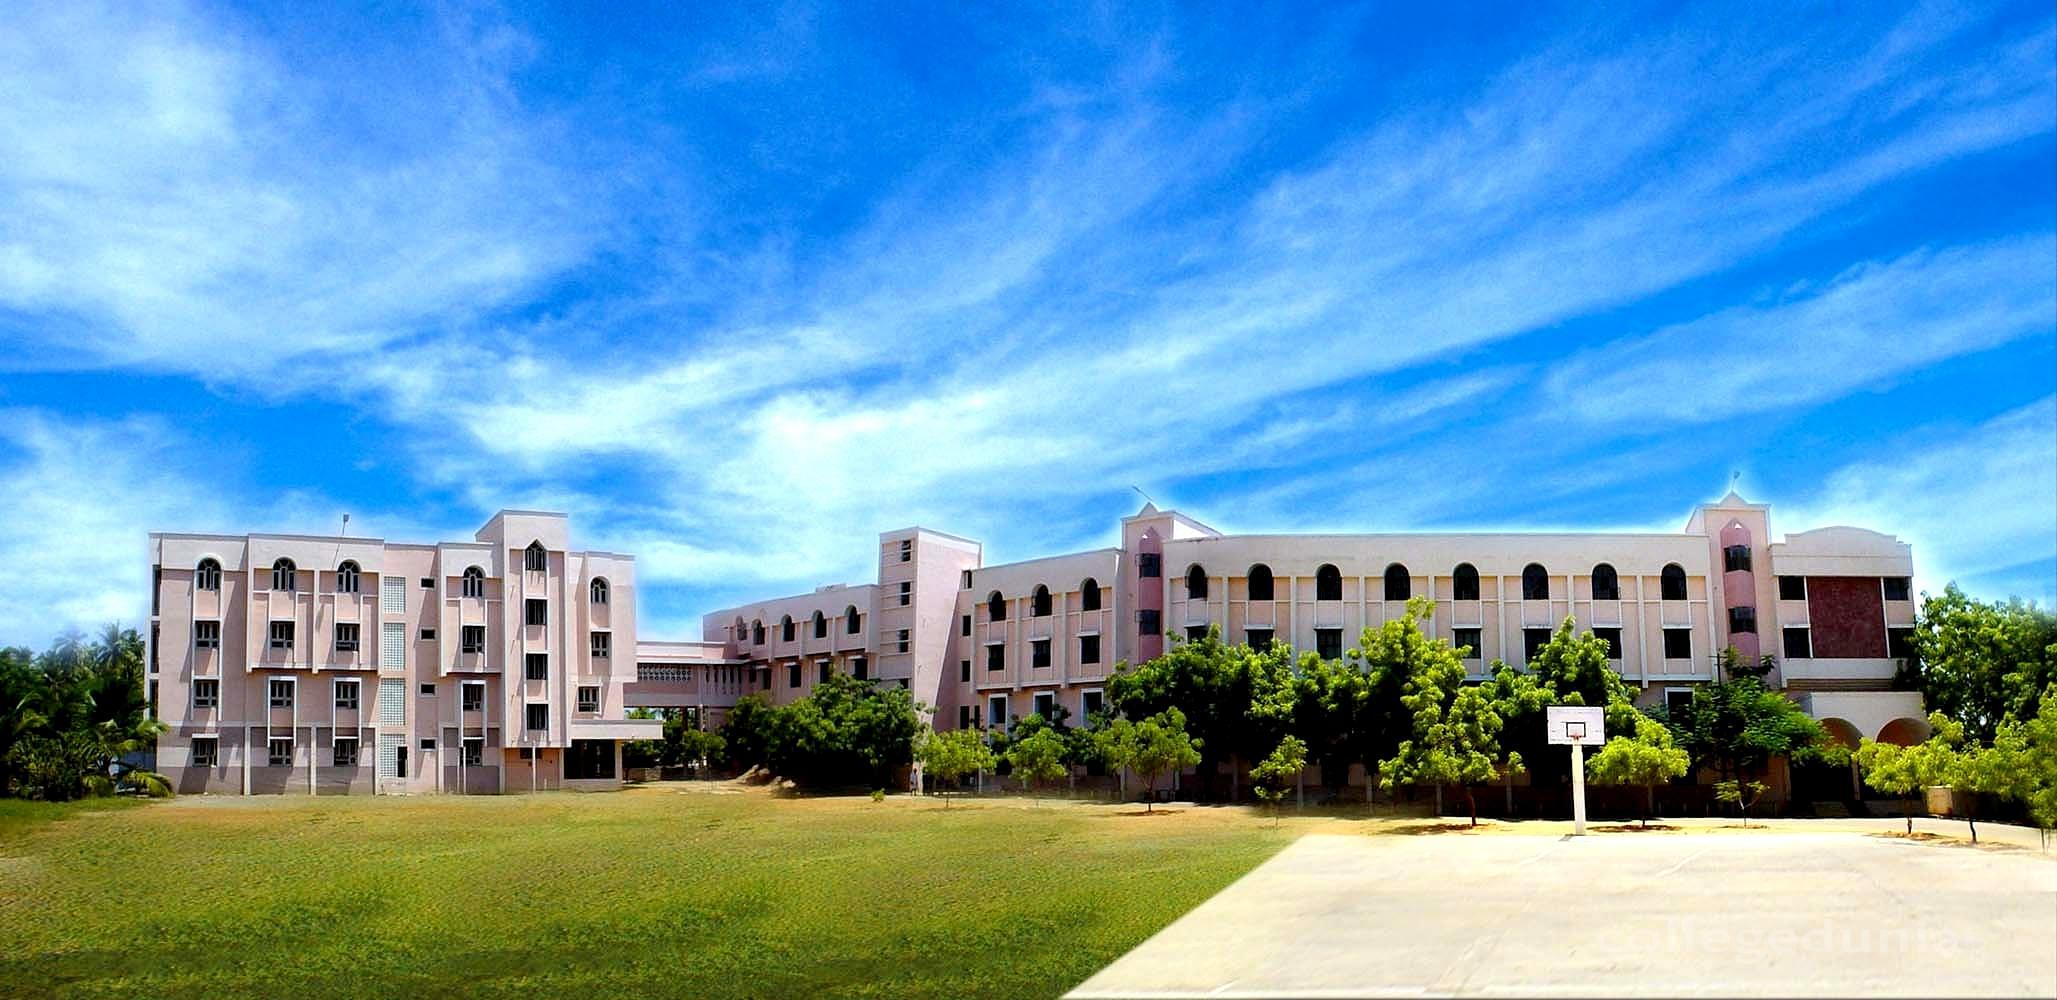 Cauvery College for Women